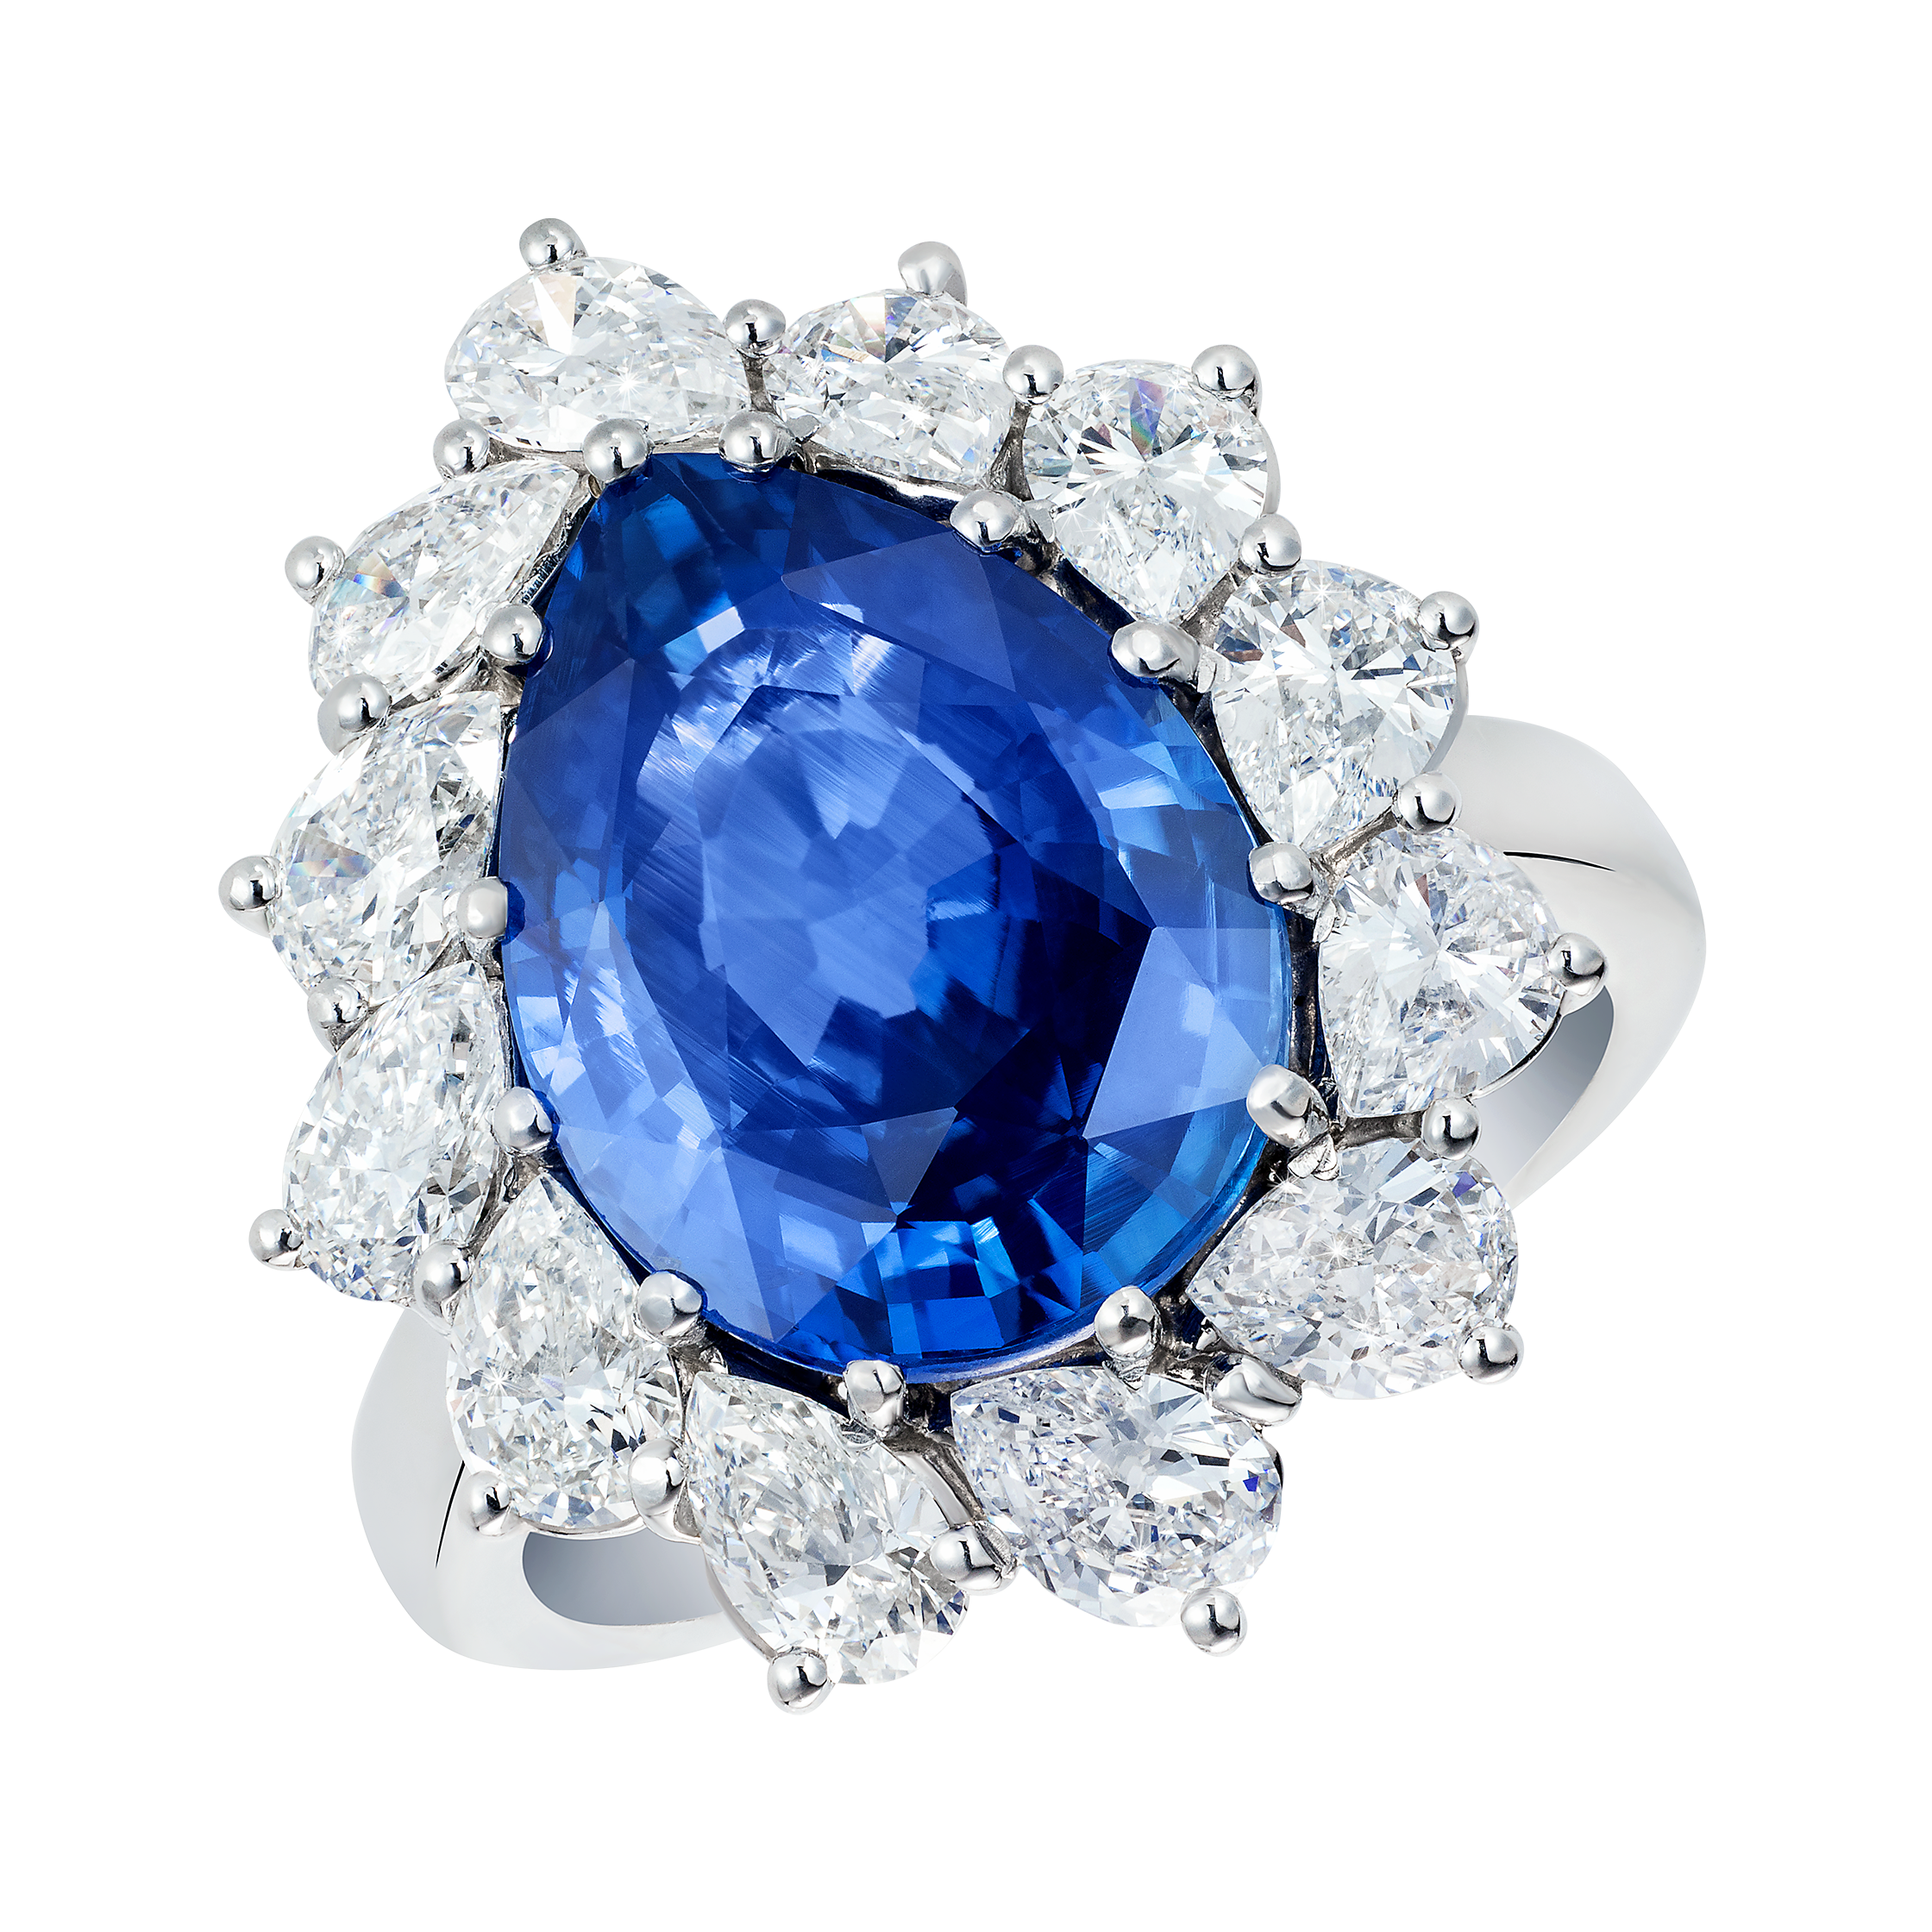 sapphire cut cutting halo design david of gemstone gem pin gemstones star